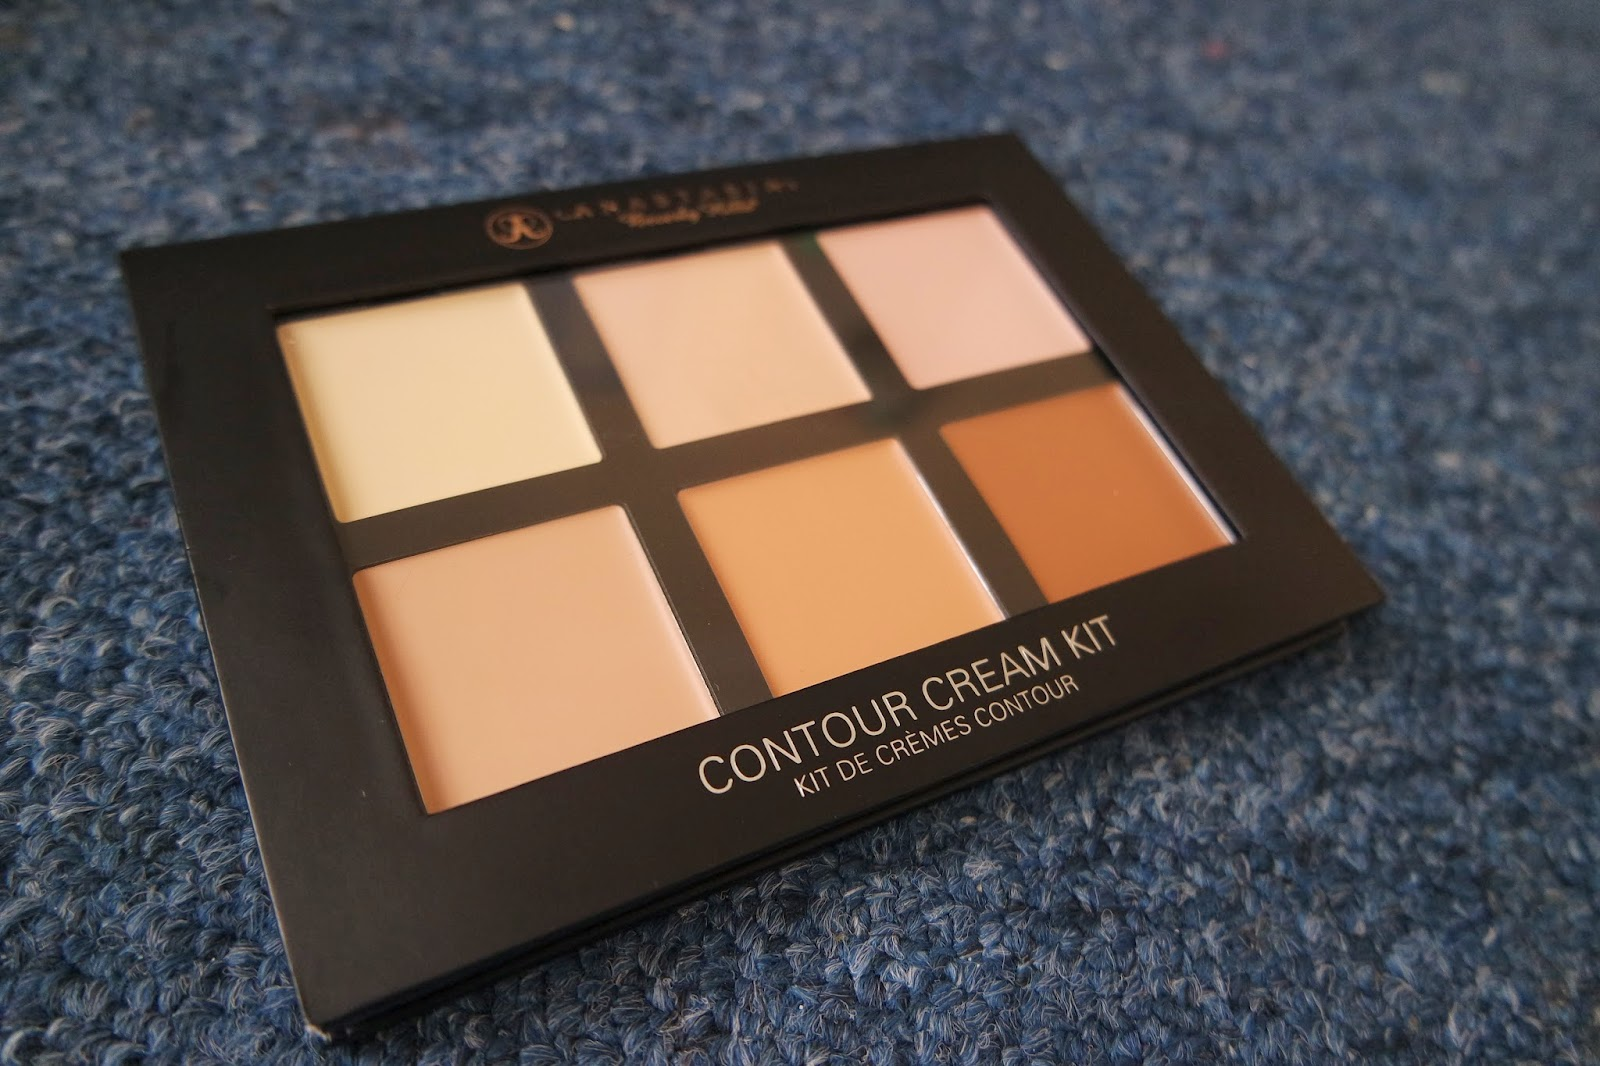 Contouring: The Anastasia Beverly Hills Contour Cream Kit